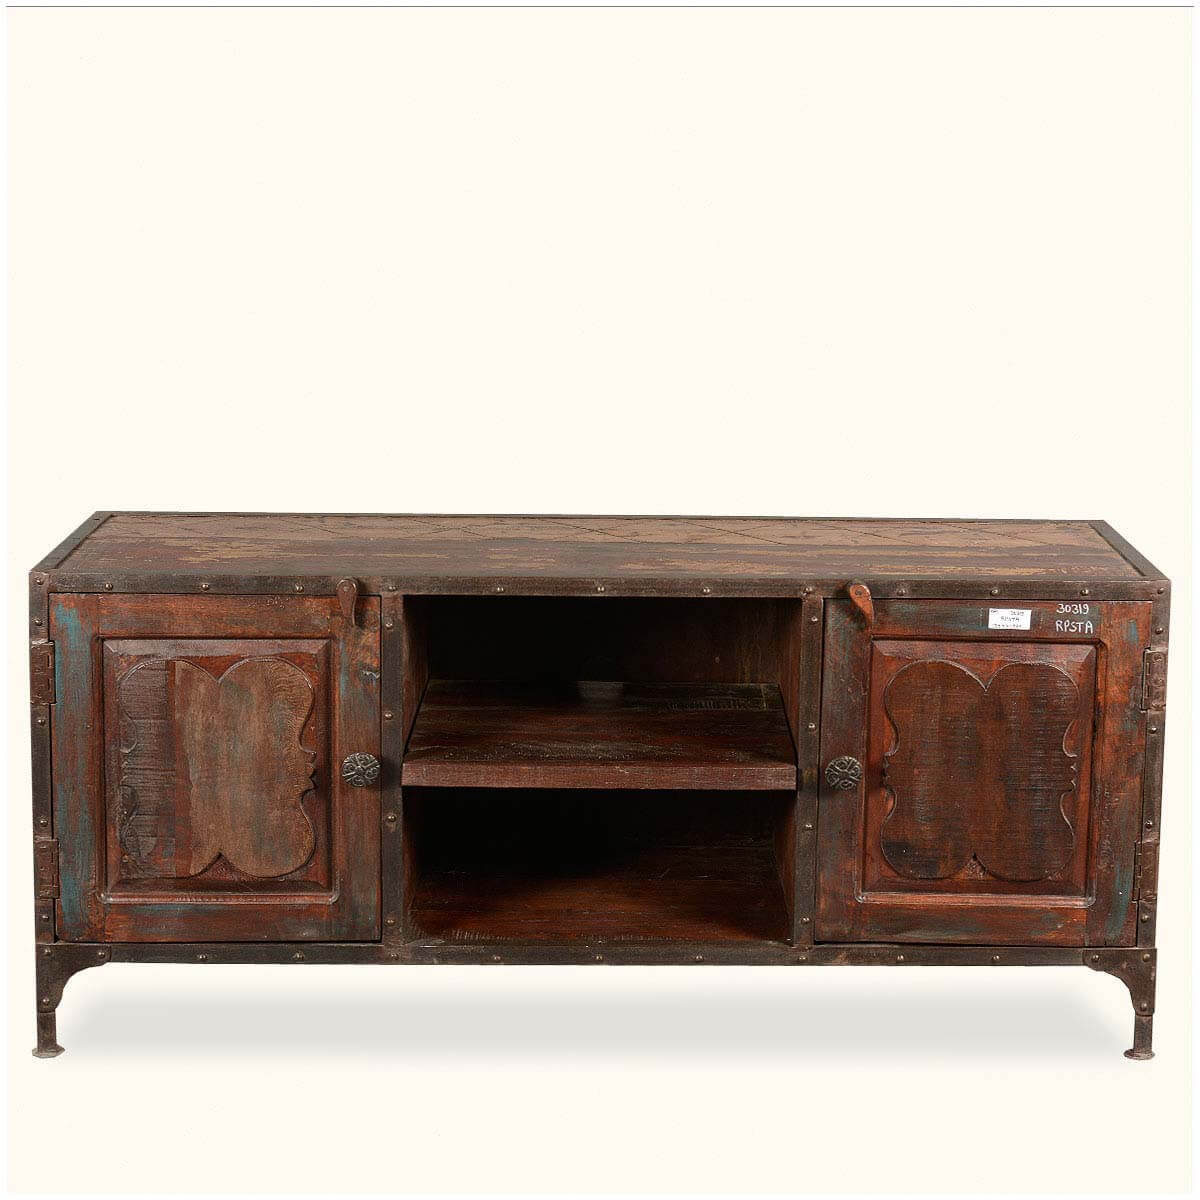 Rustic Industrial Reclaimed Wood Amp Iron TV Stand Media Console